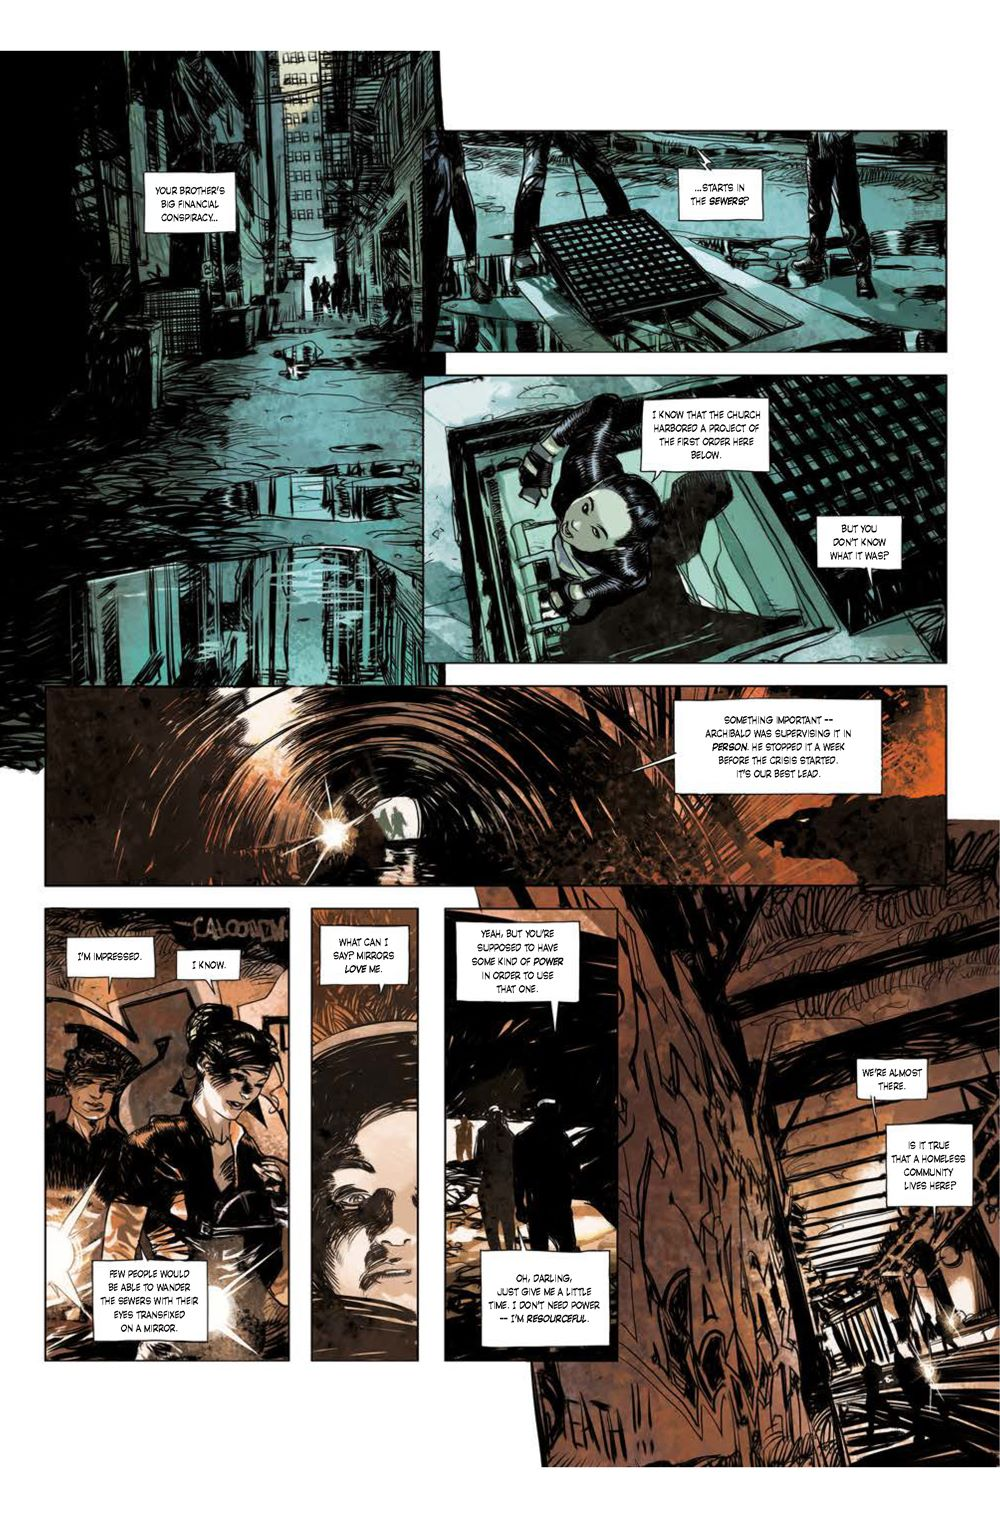 Cutting-Edge-The-Devils-Mirror-2-Binder1_Page_3 ComicList Previews: CUTTING EDGE THE DEVIL'S MIRROR #2 (OF 2)